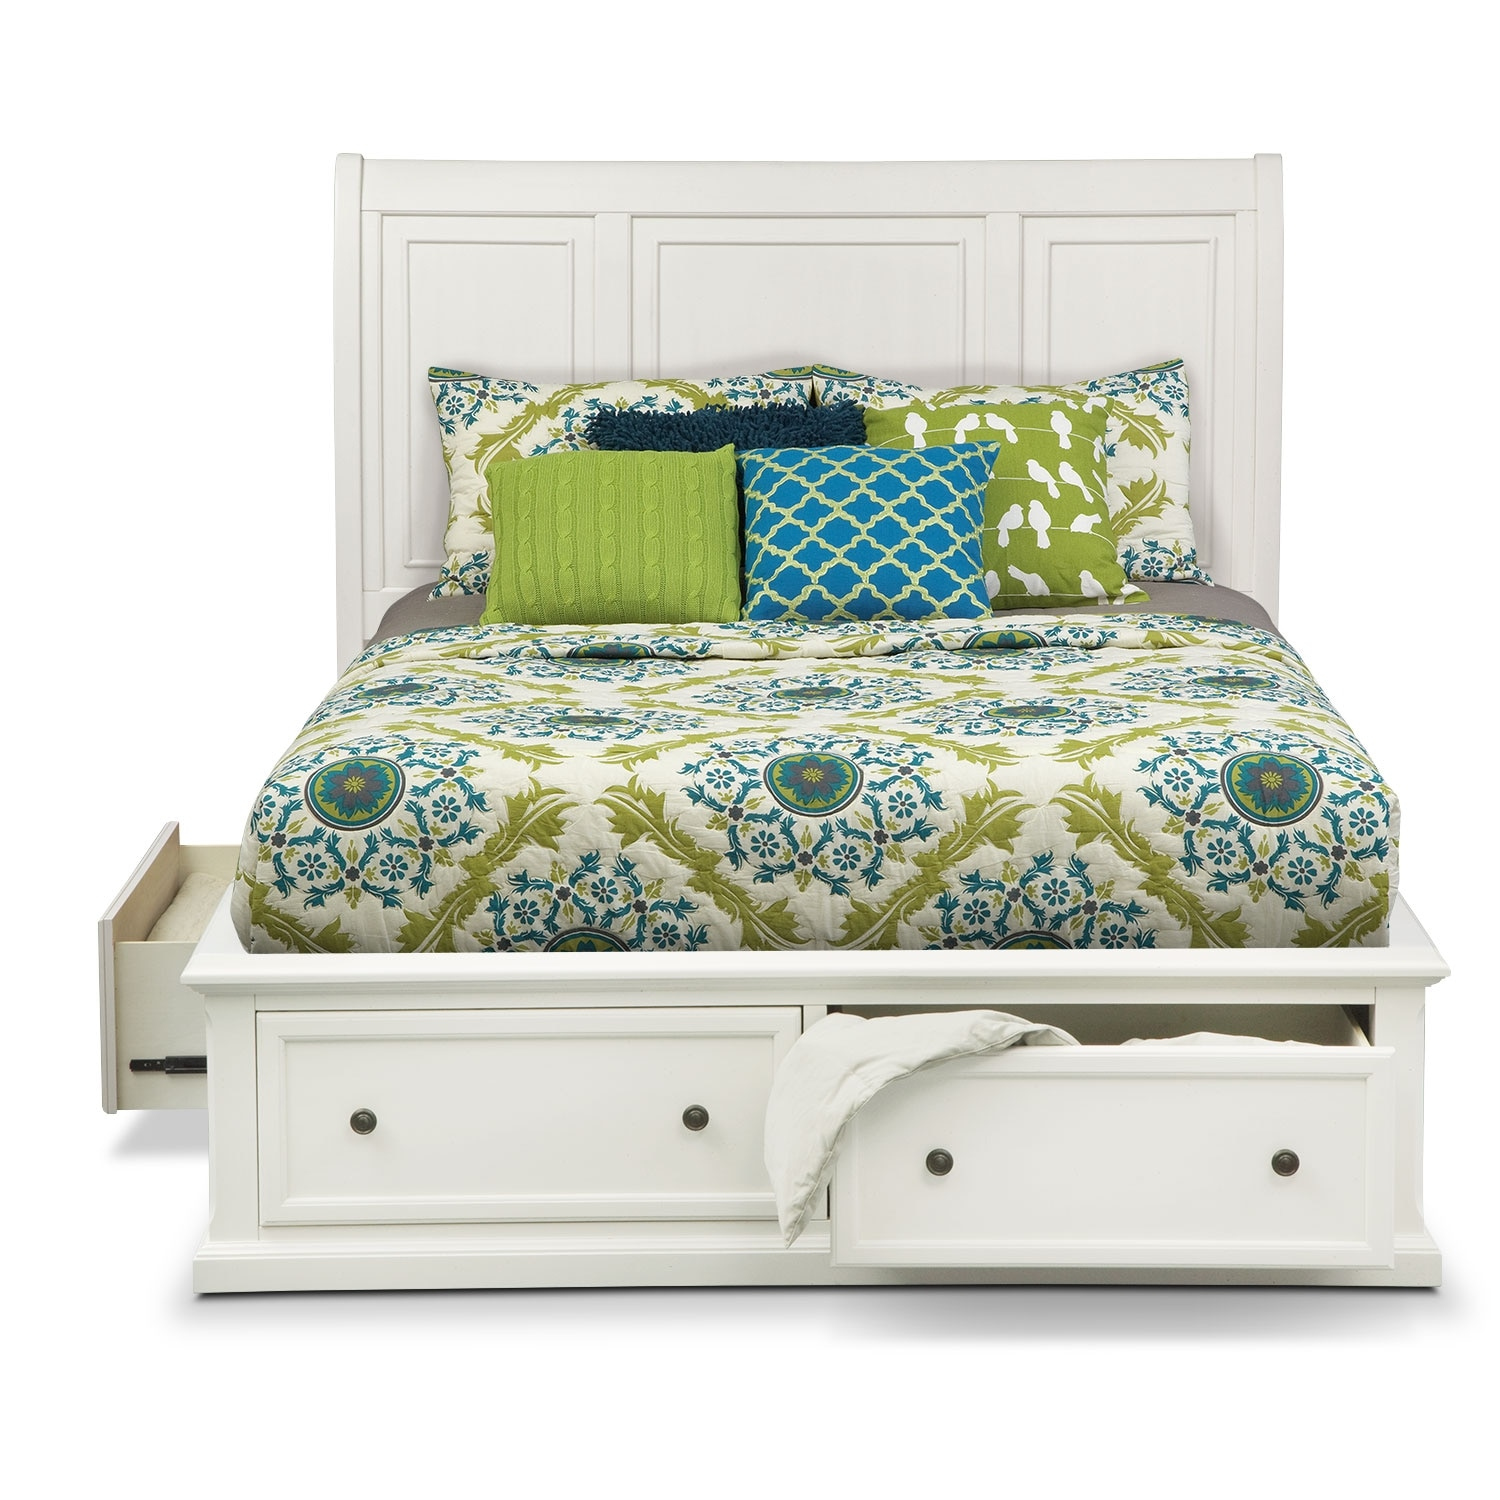 Hanover white queen storage bed value city furniture American home furniture bed frames